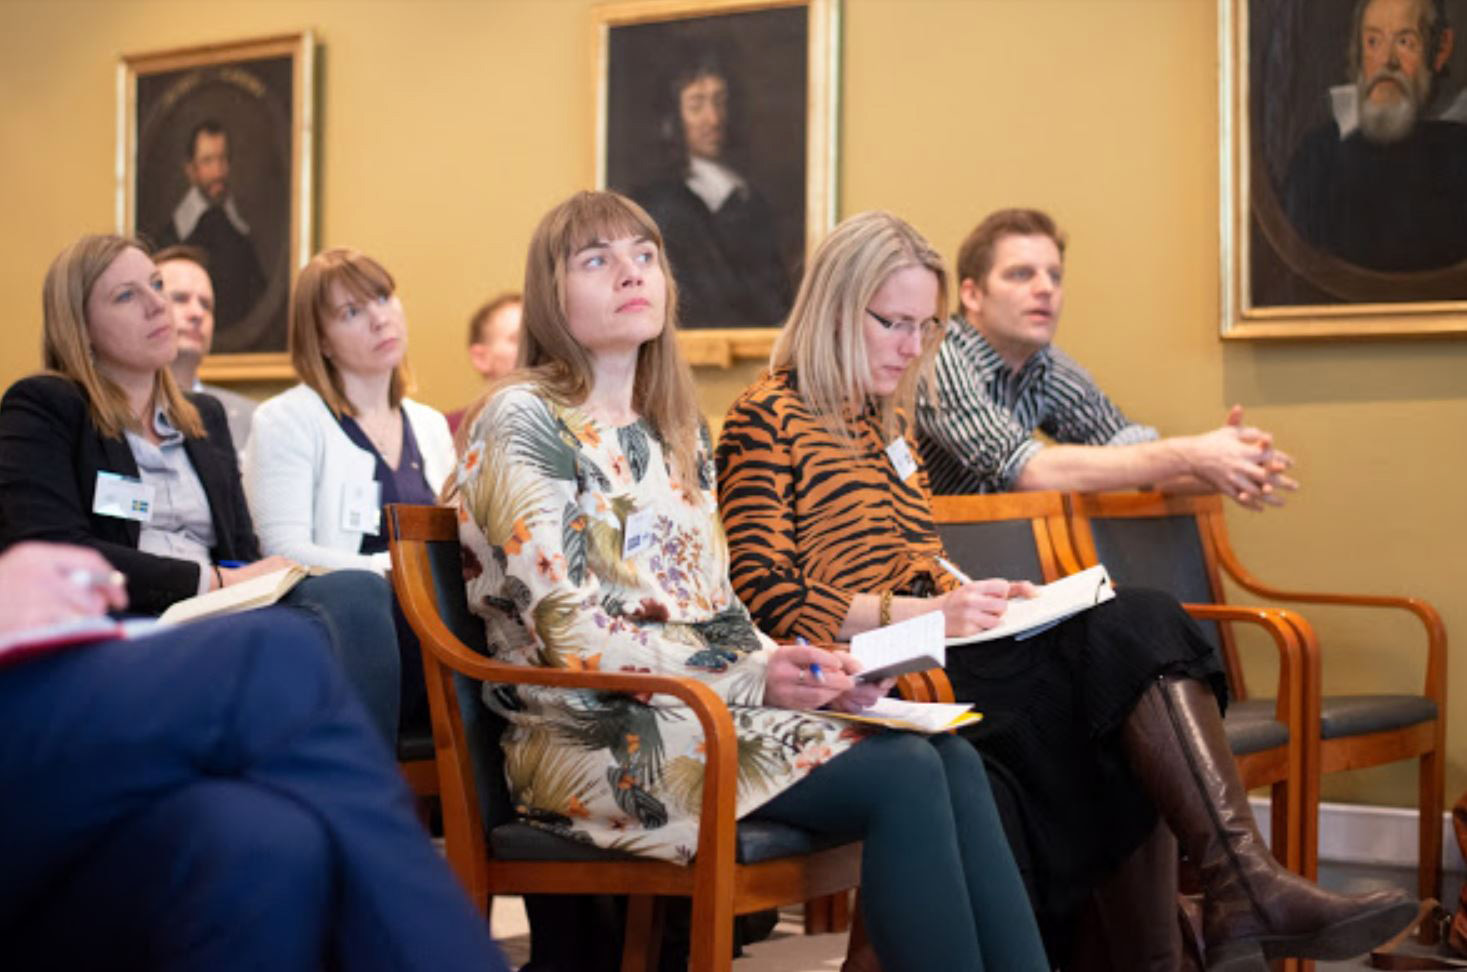 Representatives of young academics in Nordic and Baltic countries at meeting.